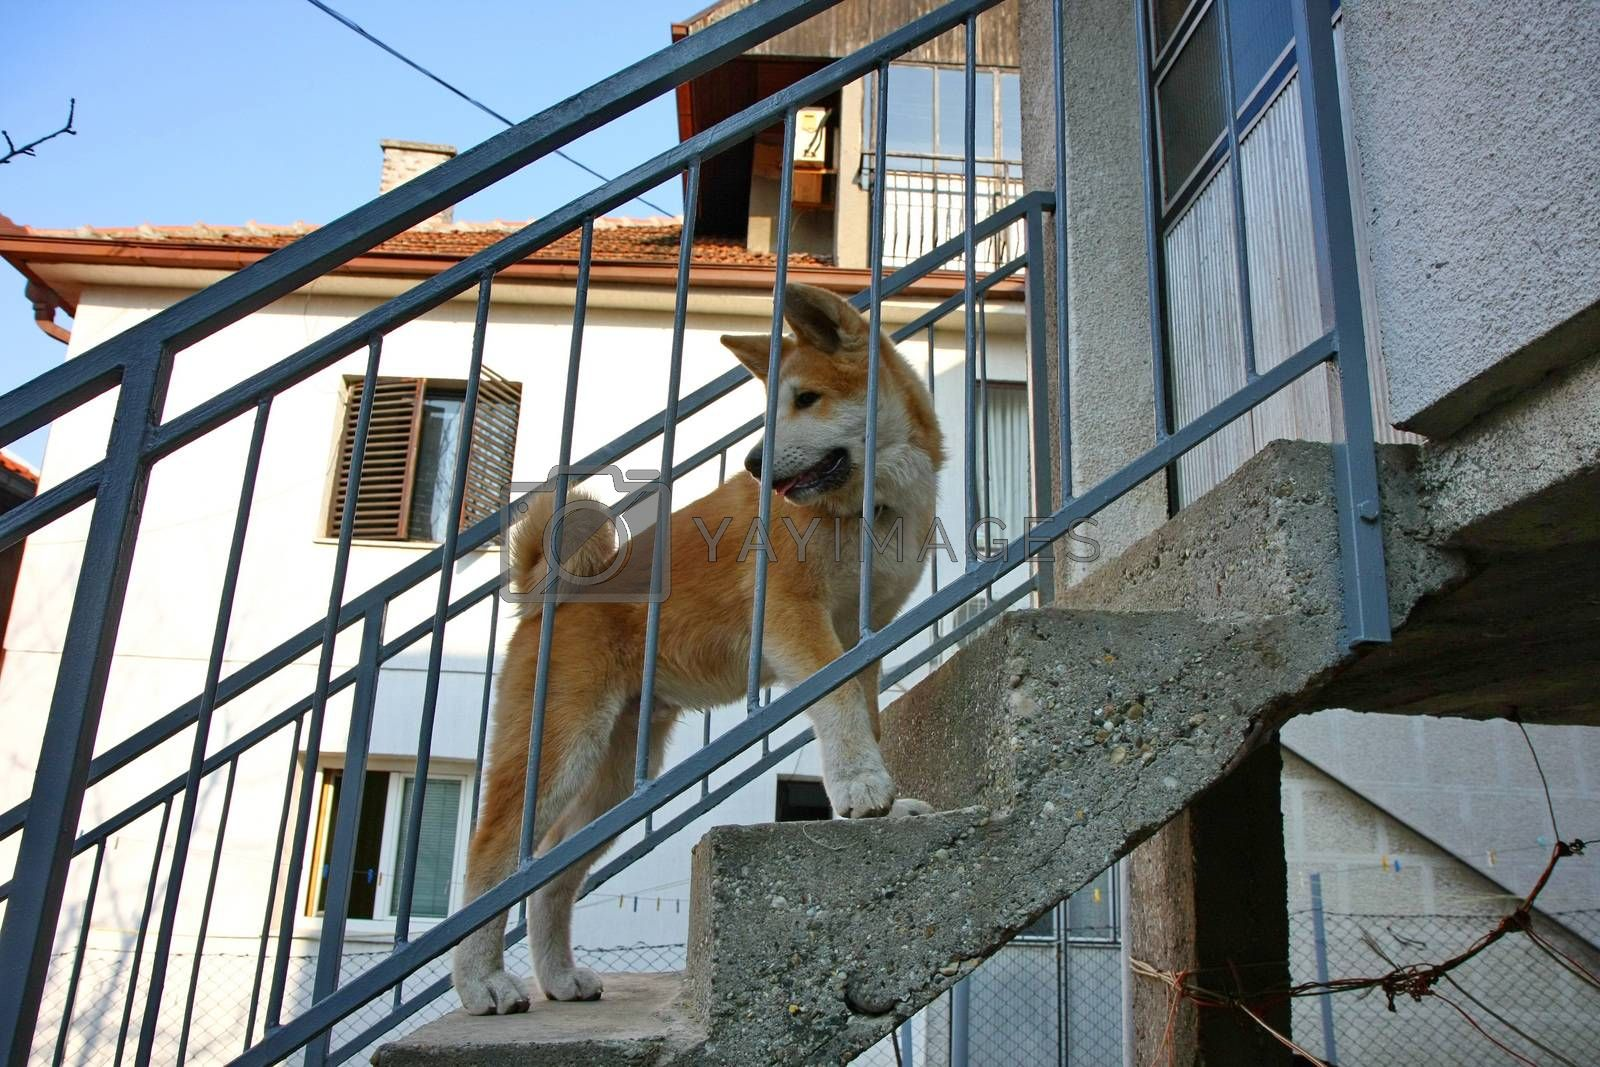 Curious Akita Inu puppy visiting posing on the stairs